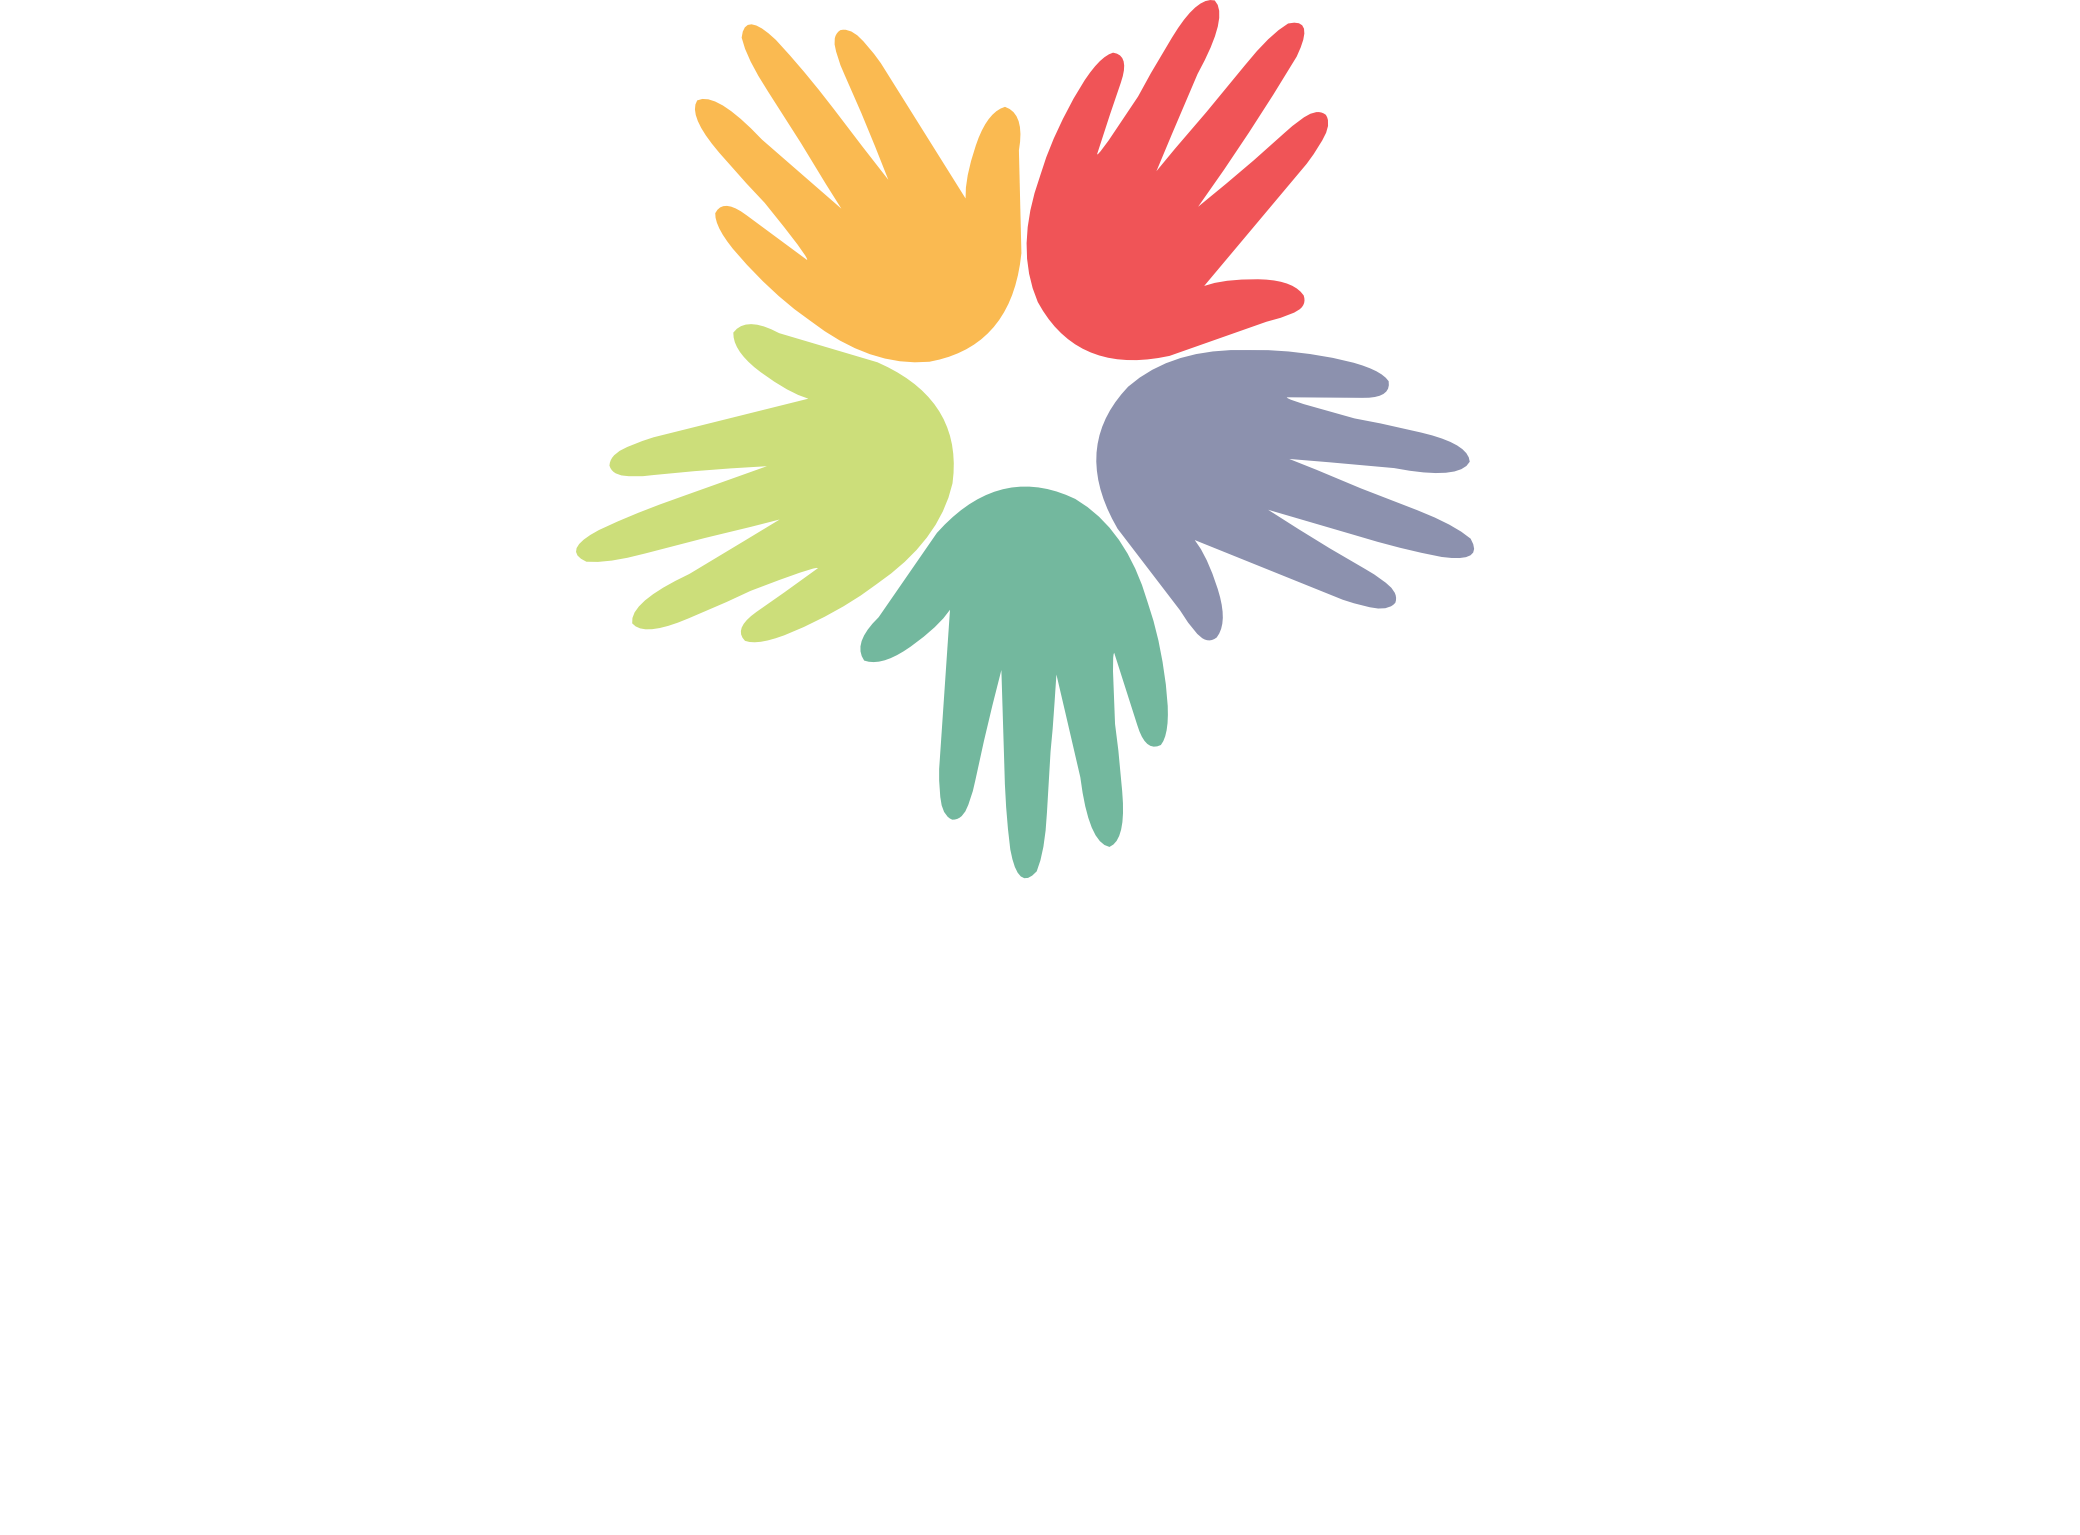 Andrea Anilonti Business Model Designer